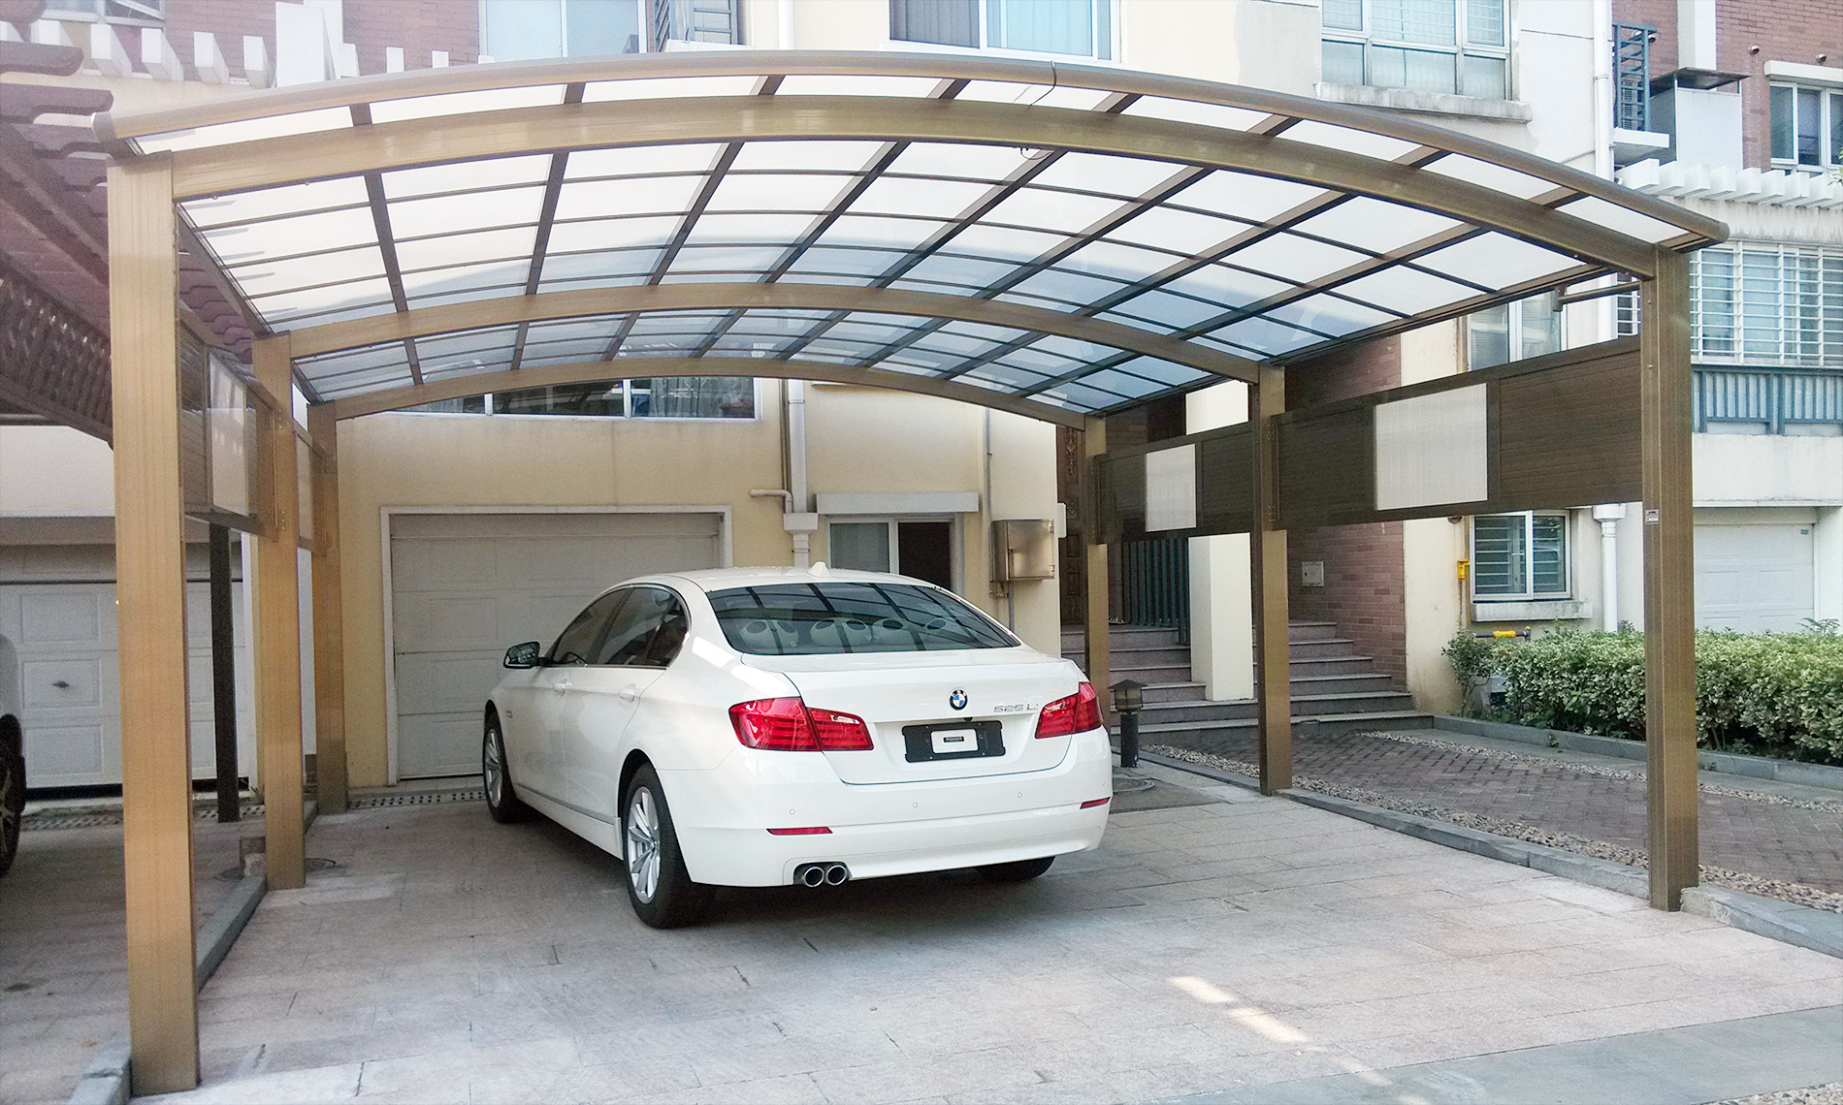 7 Single Car Carport Kits That Had Gone Way Too Far | single car carport kits